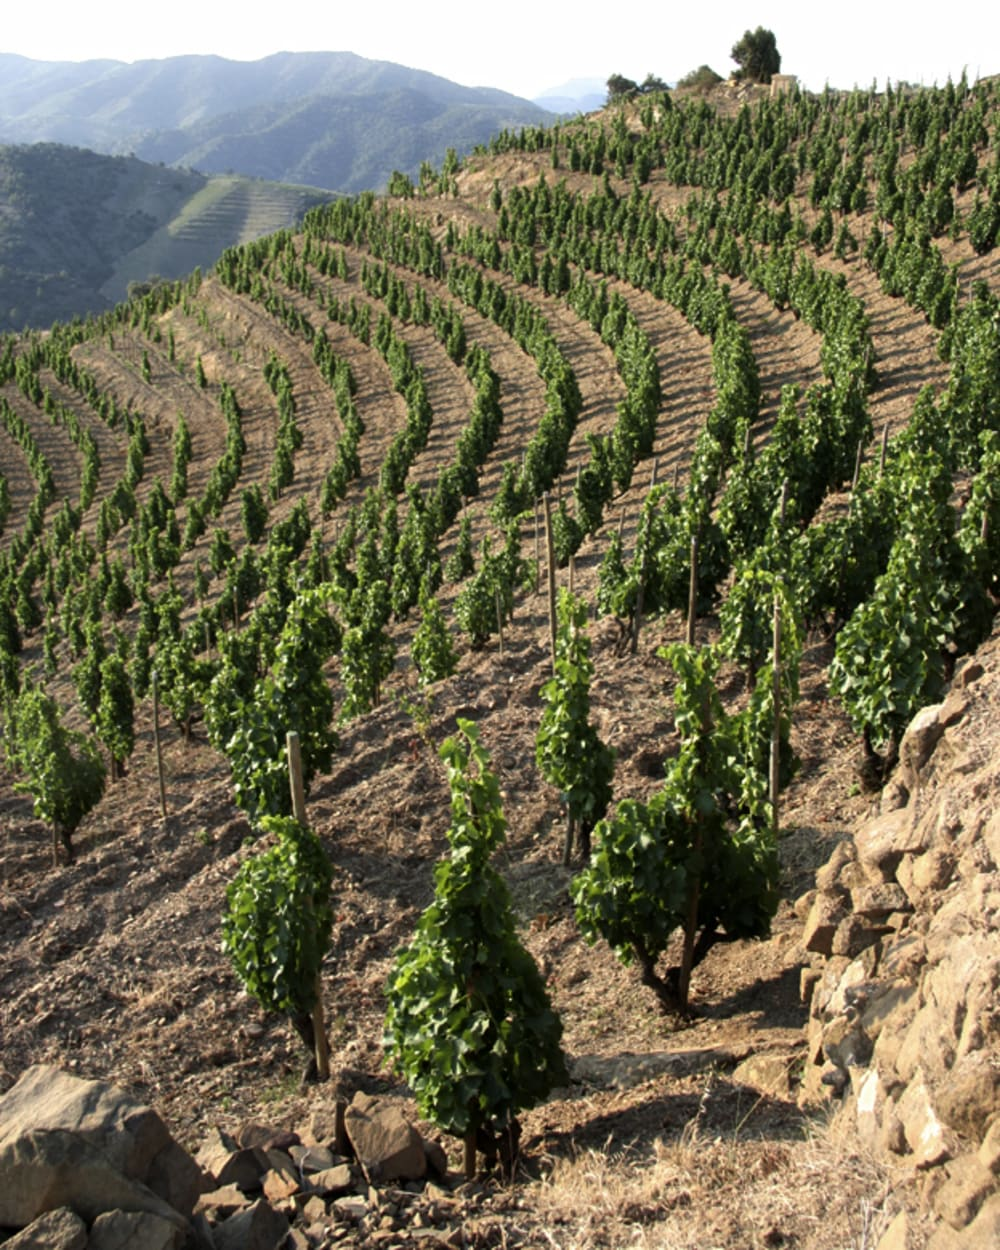 Priorat (courtesy Alavaro Palacios)